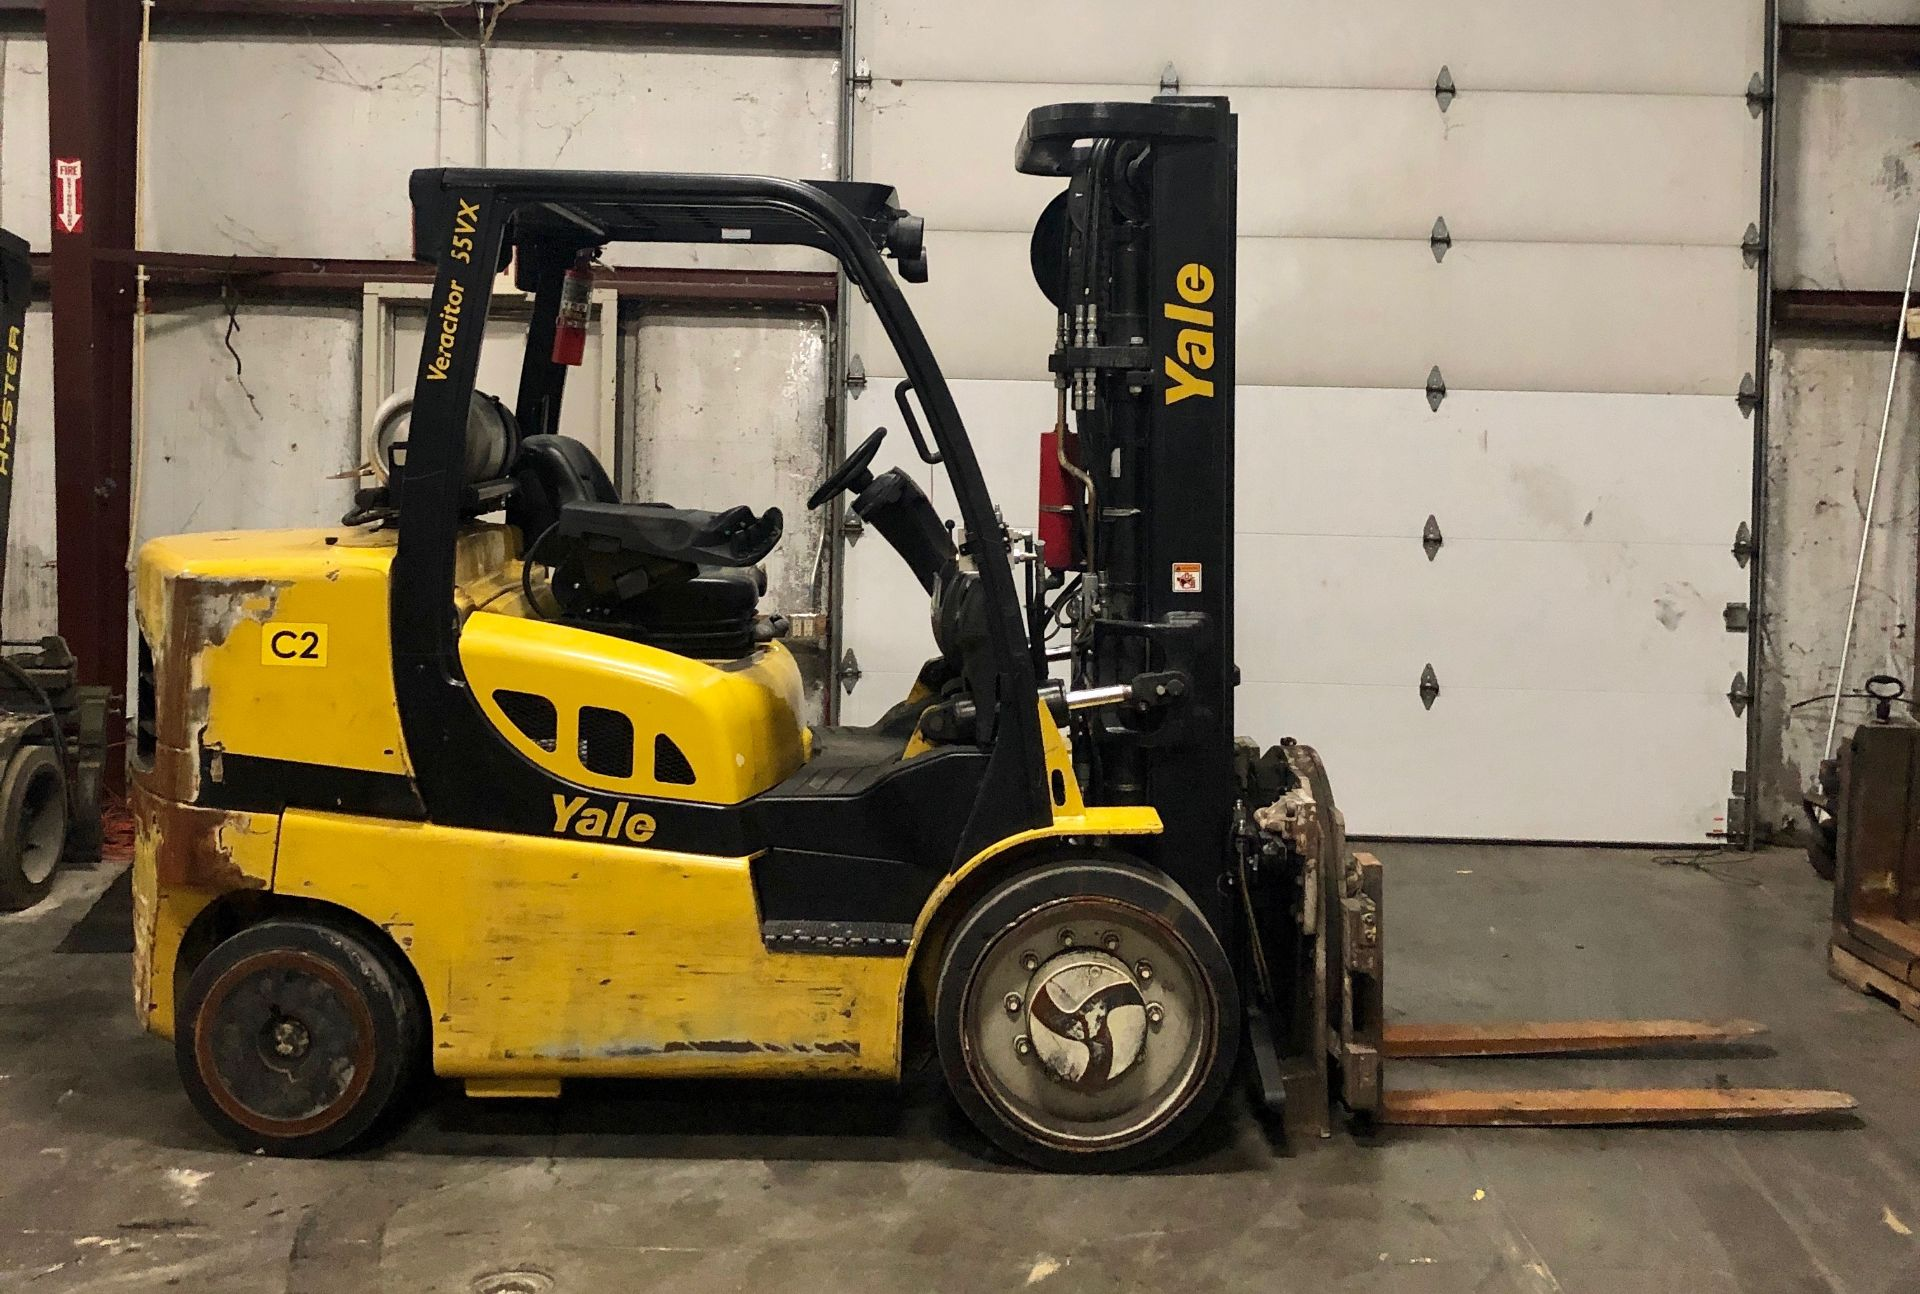 Lot 1 - 2015 HYSTER 15,500-LB. CAPACITY FORKLIFT, MODEL: S155FT, S/N: F879V01737N, LPG, SOLID TIRES, LEVER